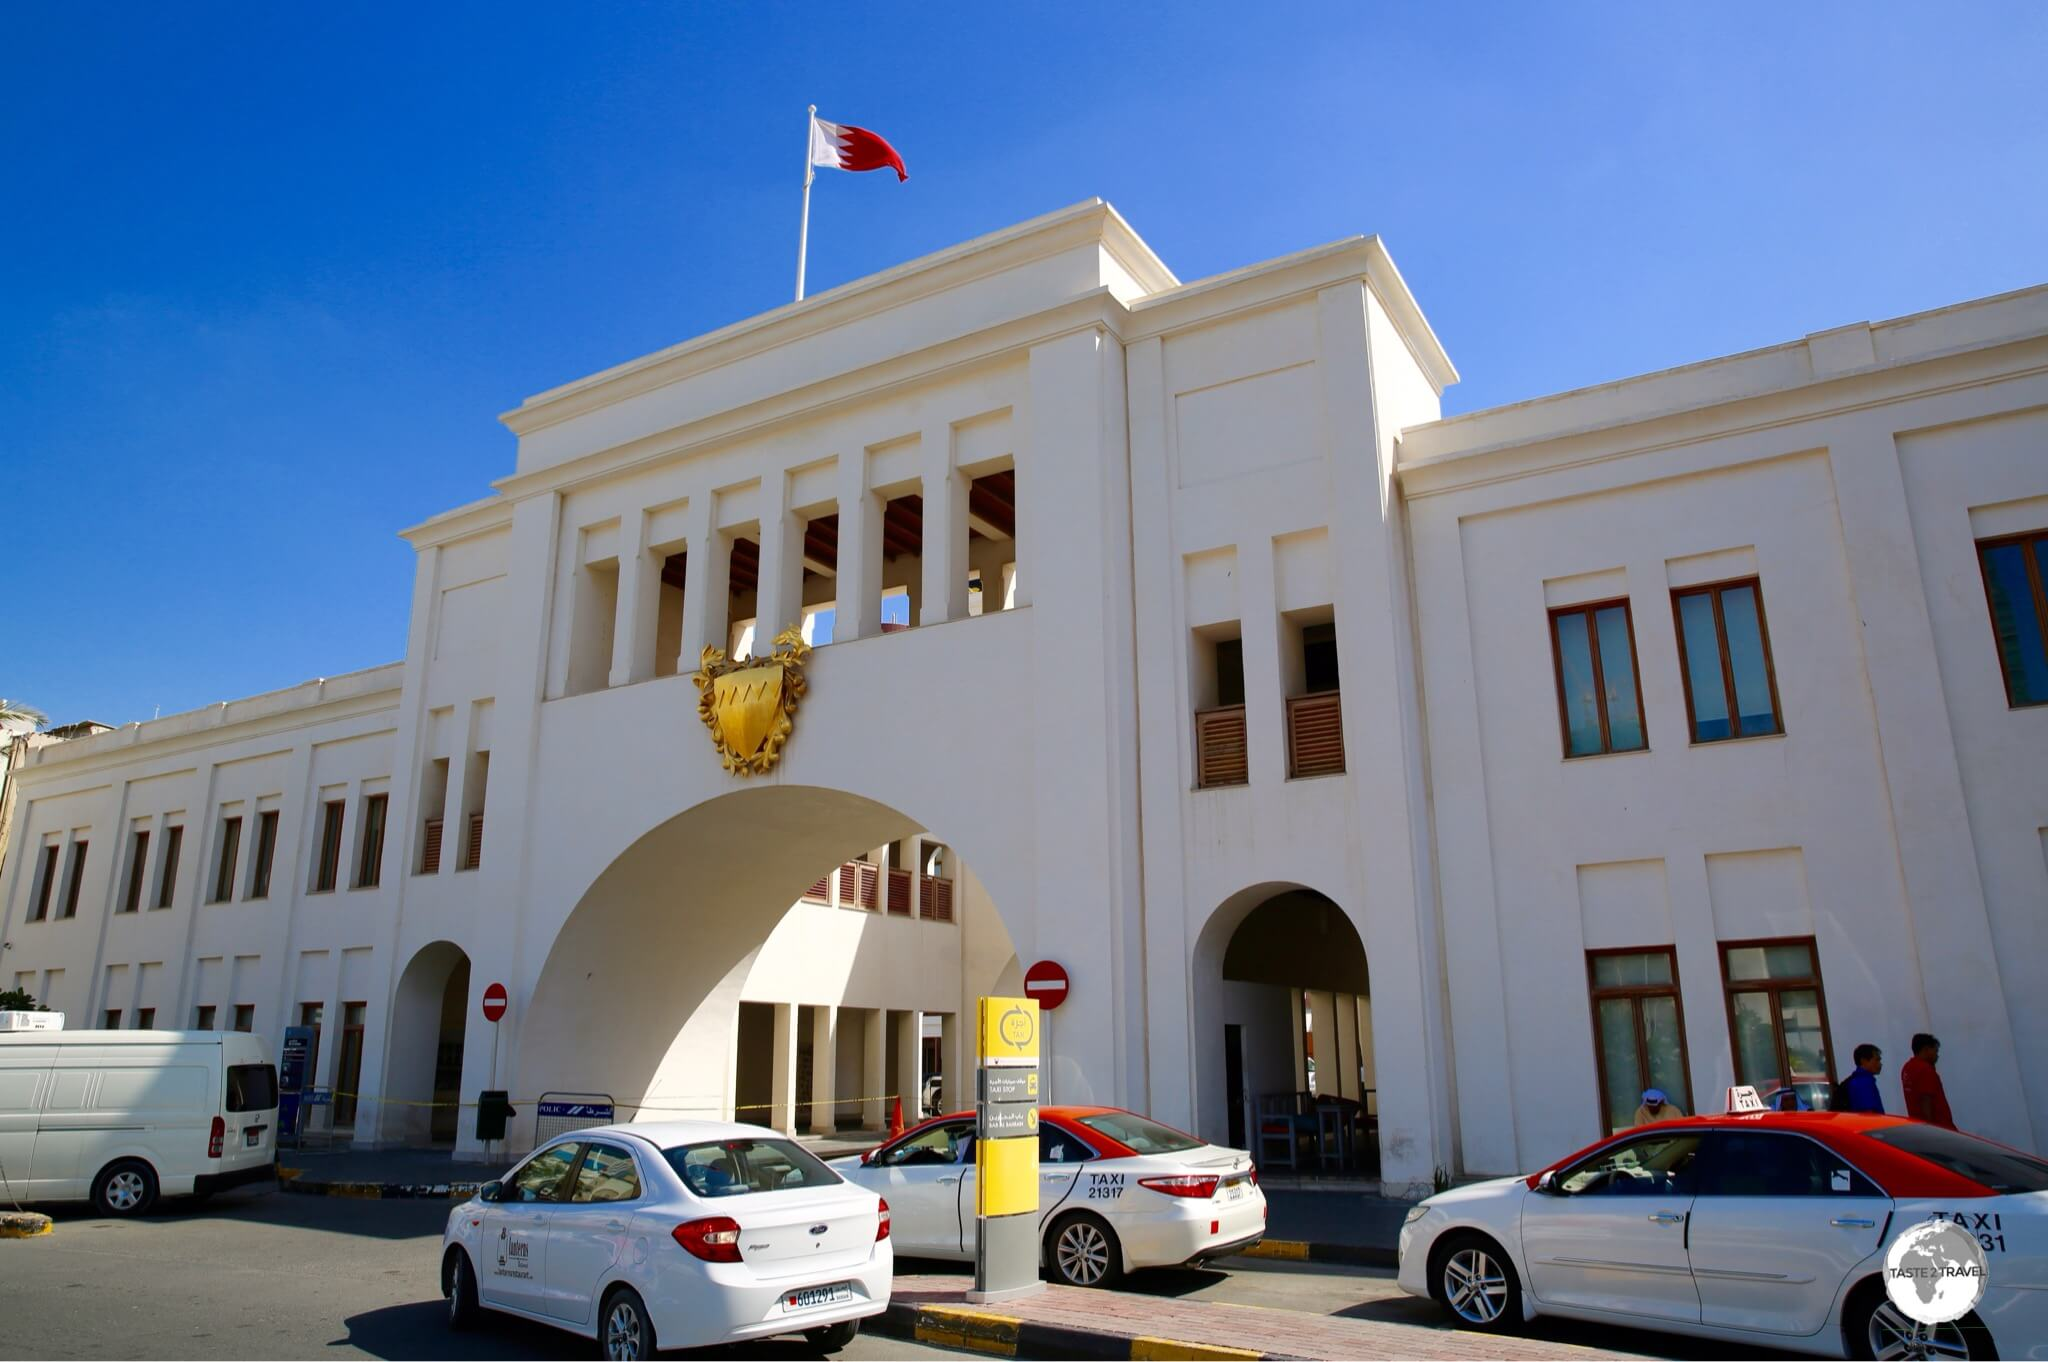 All roads lead to Bab Al Bahrain, the heart of Manama old town.